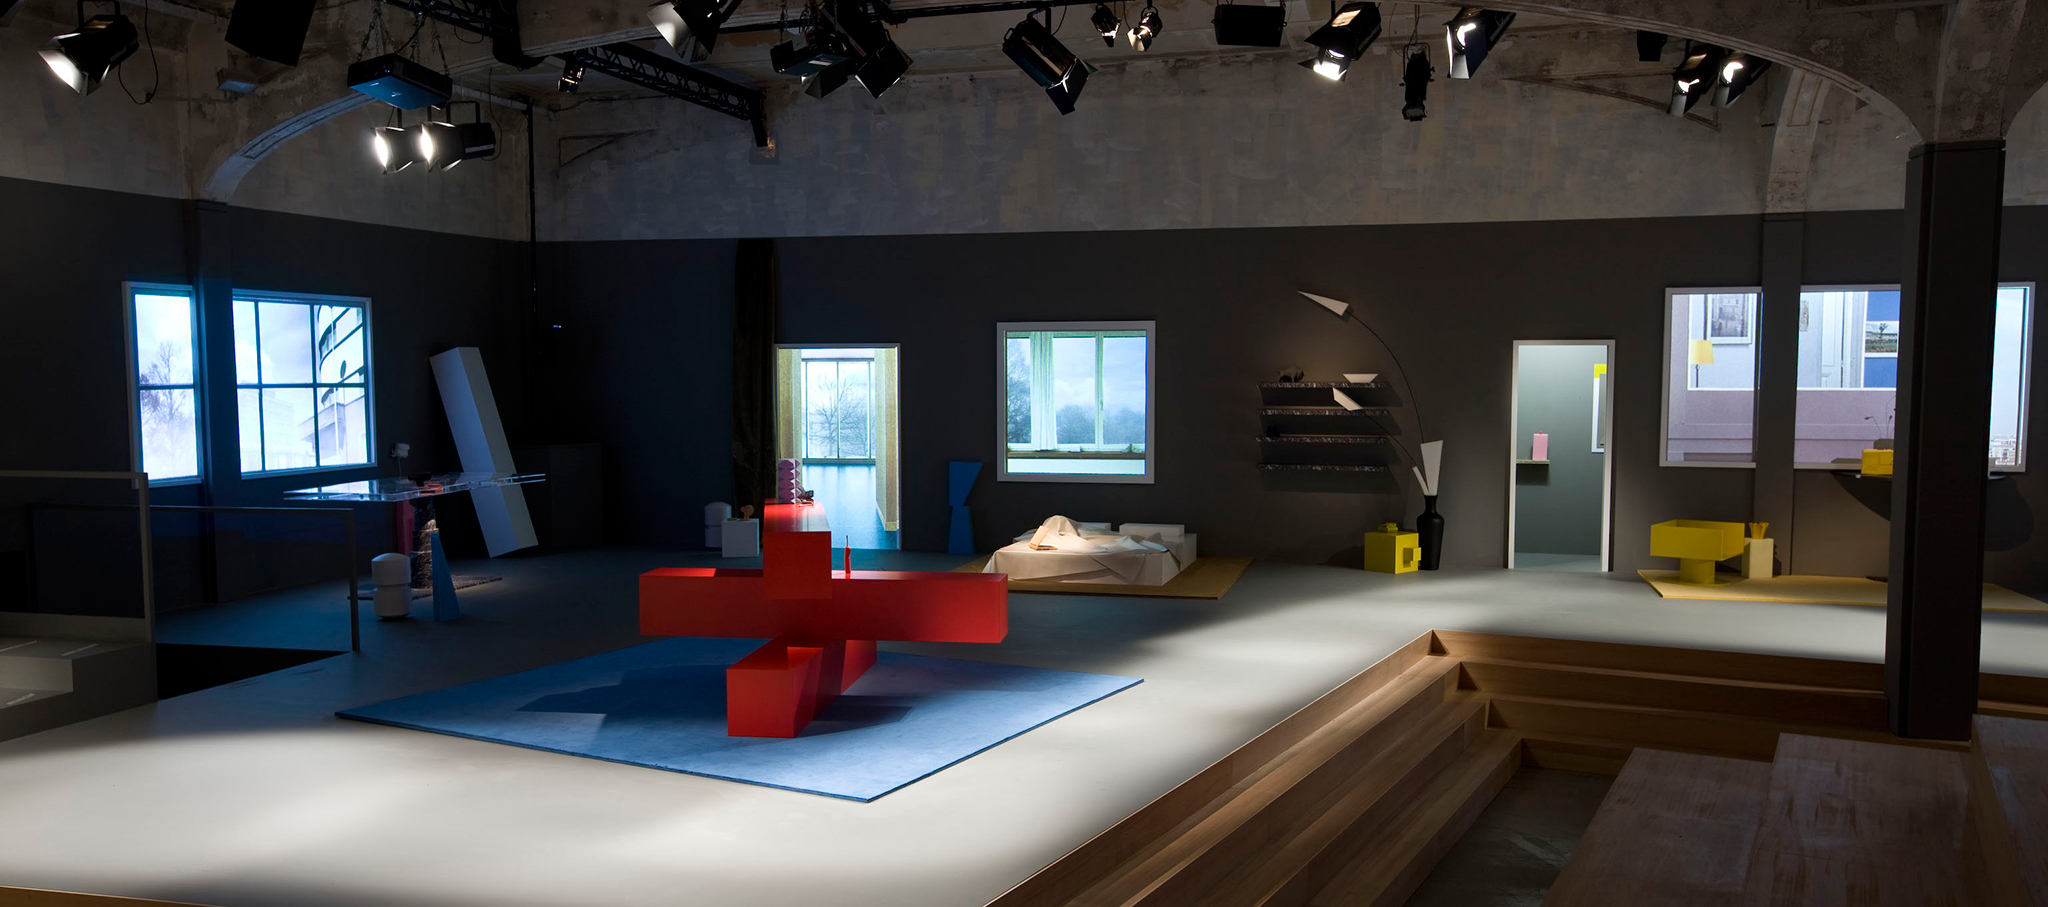 Oma S Fondazione Prada In Milan New Images Metalocus # Muebles New Challenge